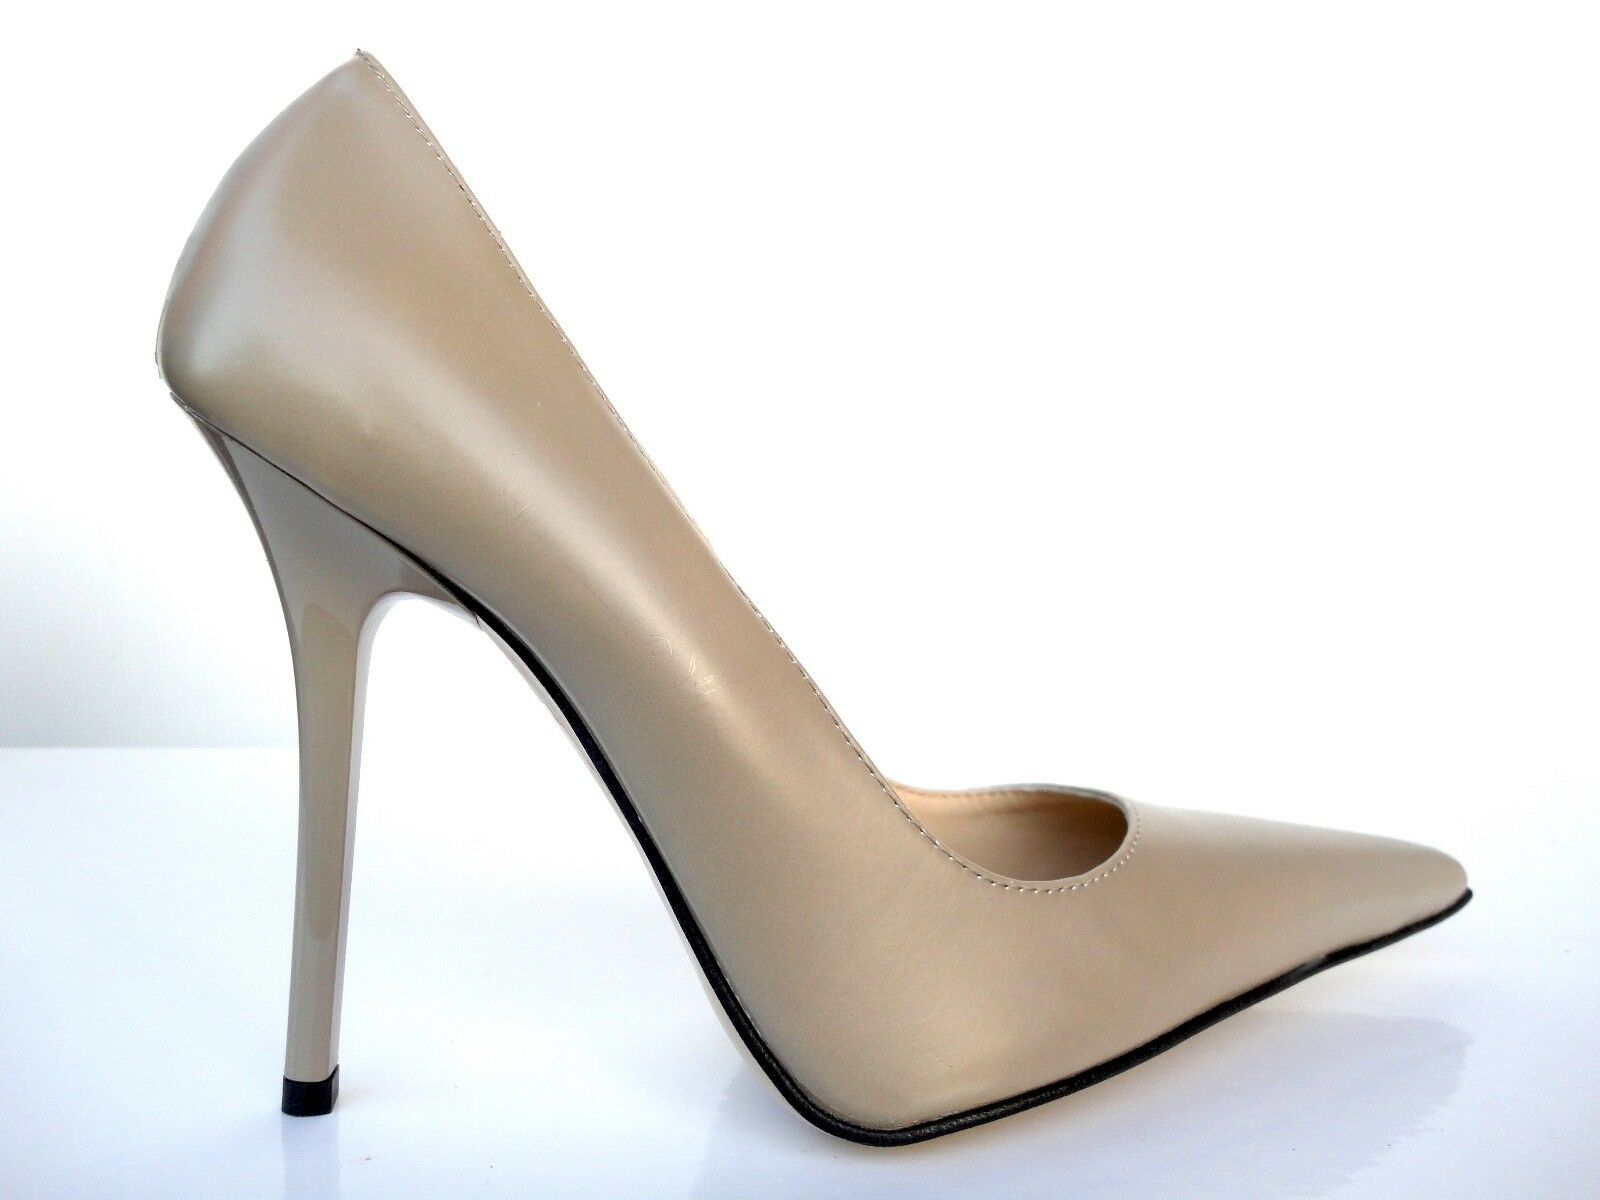 GIOHEL ITALY HIGH HEELS POINTY SCHUHE TOE PUMPS SCHUHE POINTY LEATHER DECOLTE BEIGE NUDE 39 882571